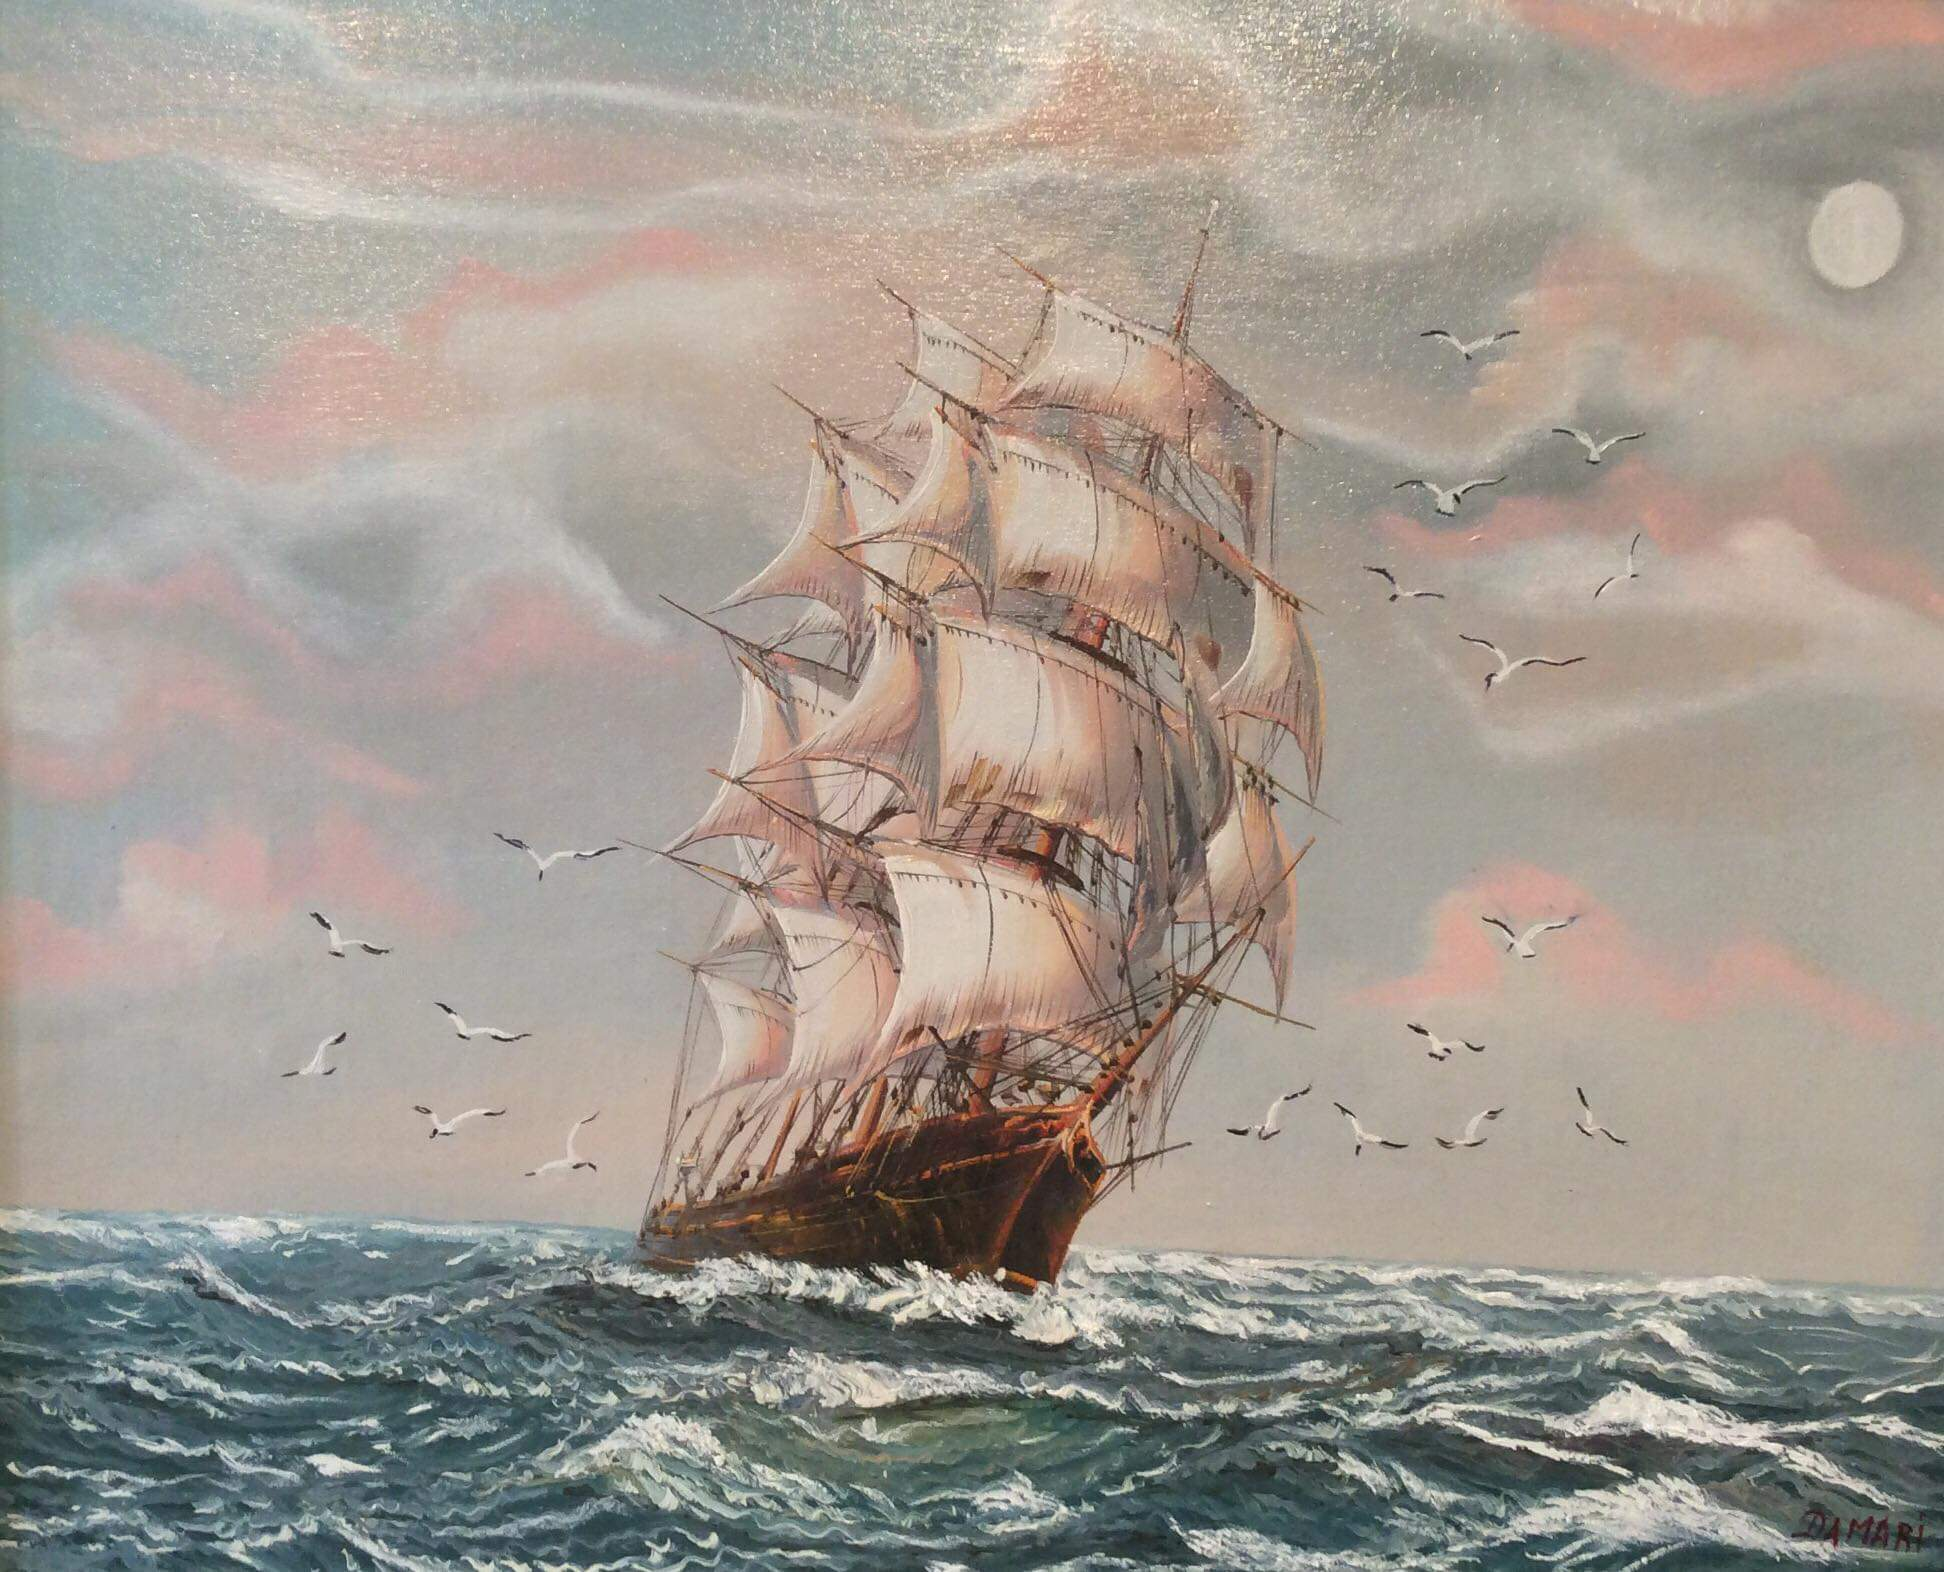 Moonlight sailing to the Indis, oil on canvas by John Damari